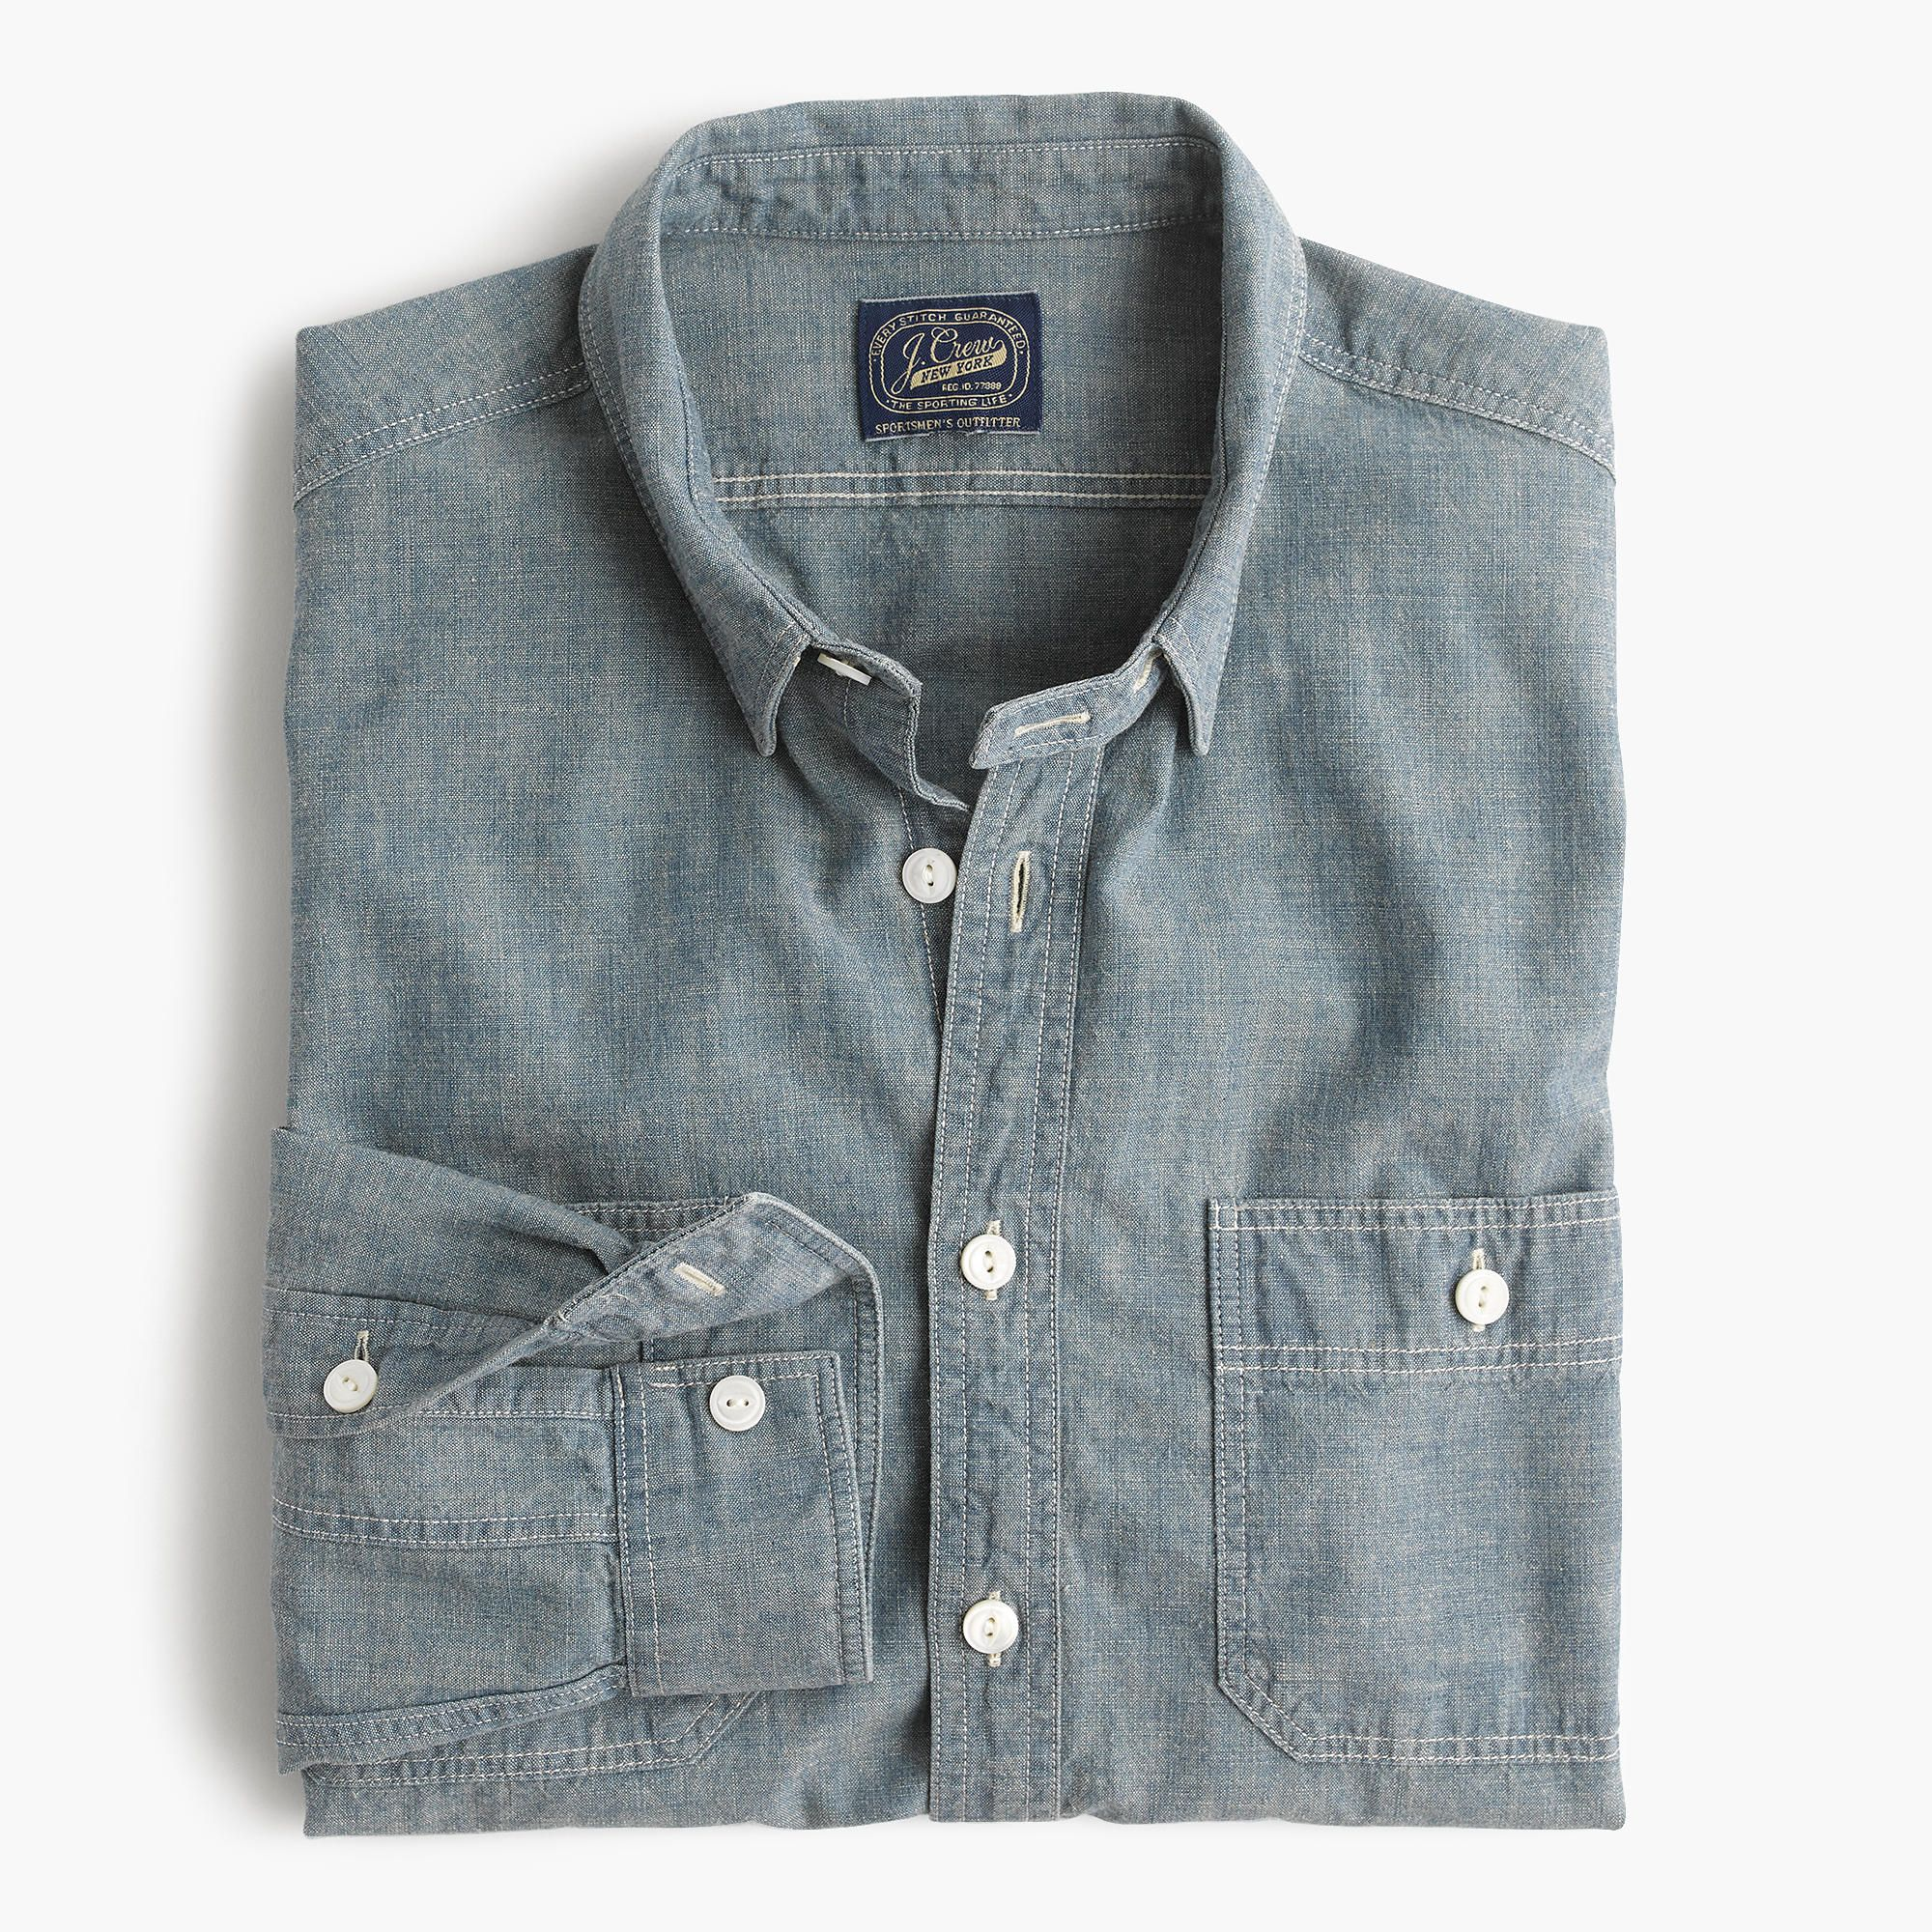 90892e3cf27 Shop the Slim Selvedge Japanese Chambray Utility Shirt at JCrew.com and see  our entire selection of Men s Shirts.  98